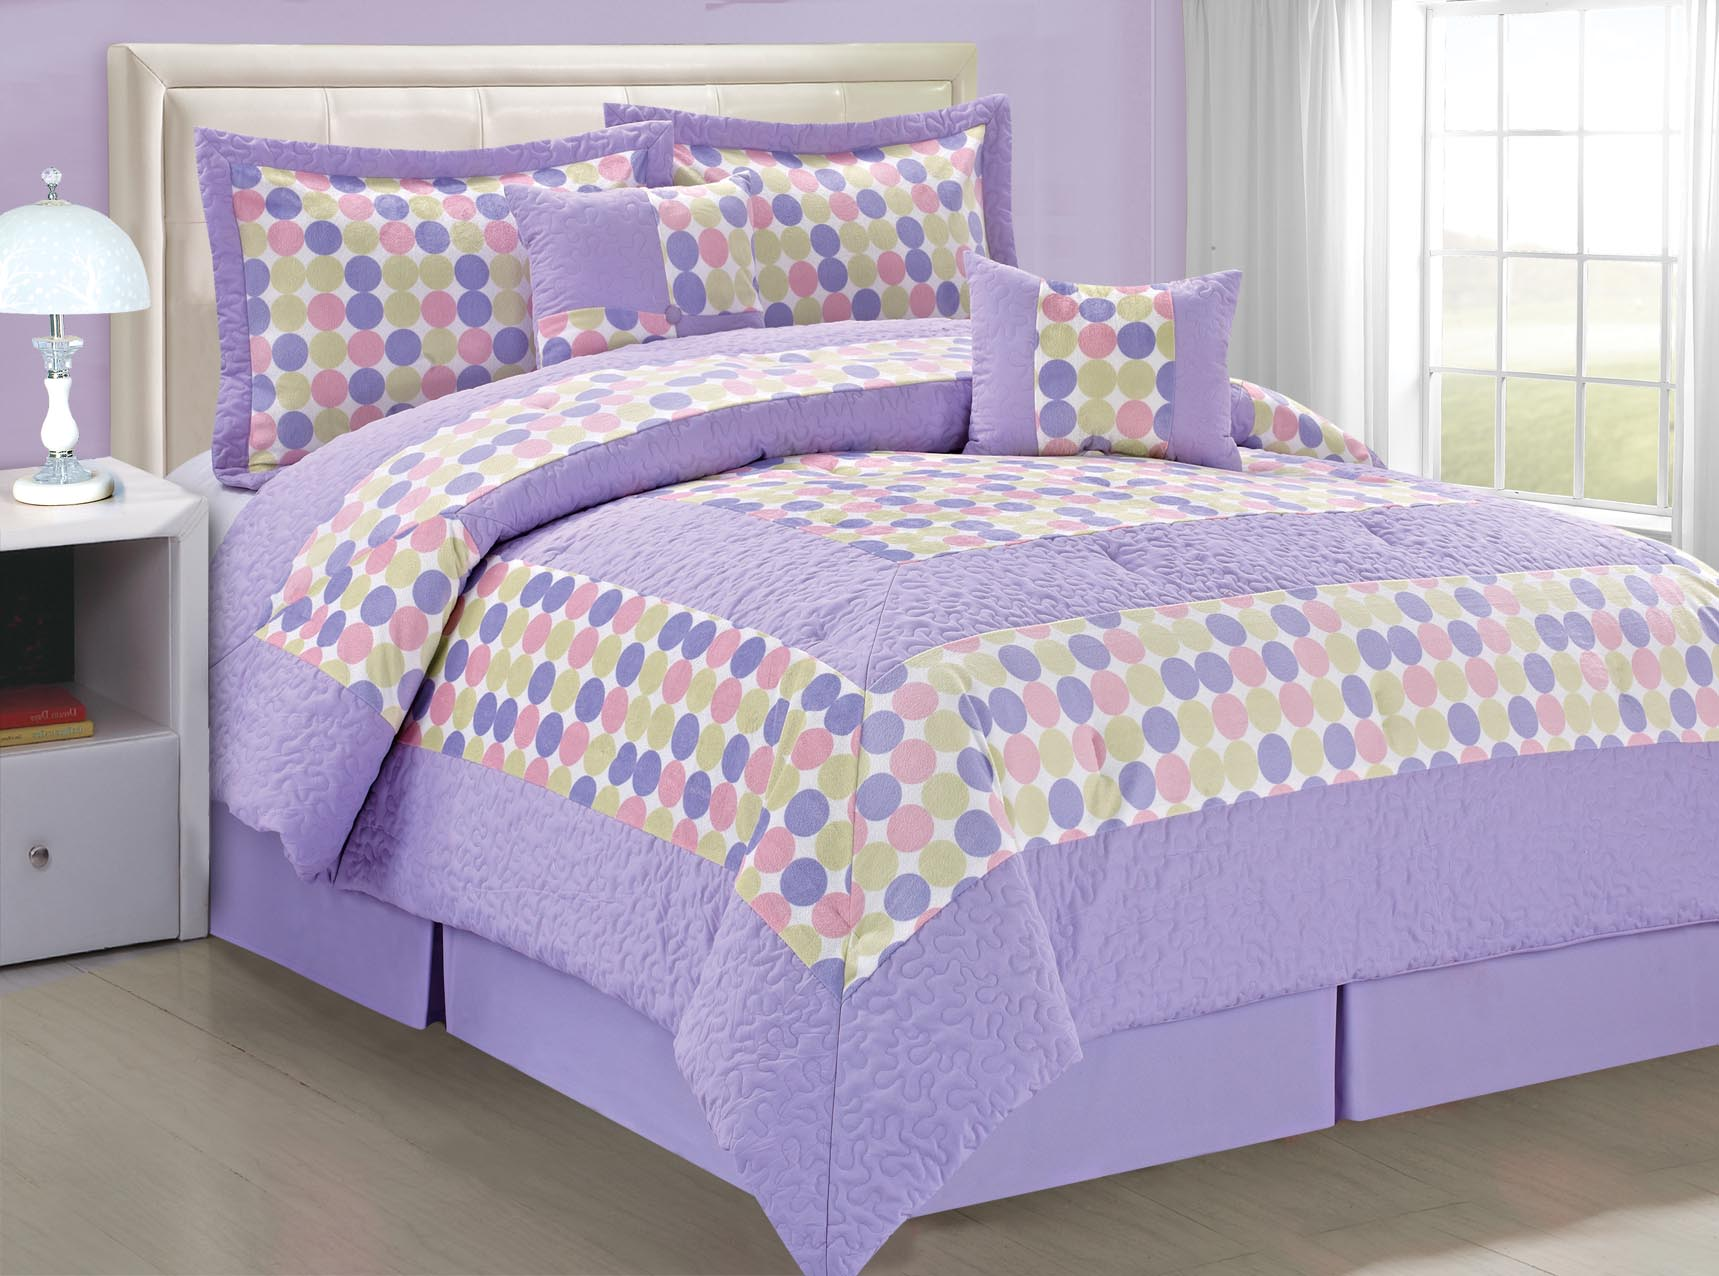 Lilac Big Dots Comforter Bedding Bed Set